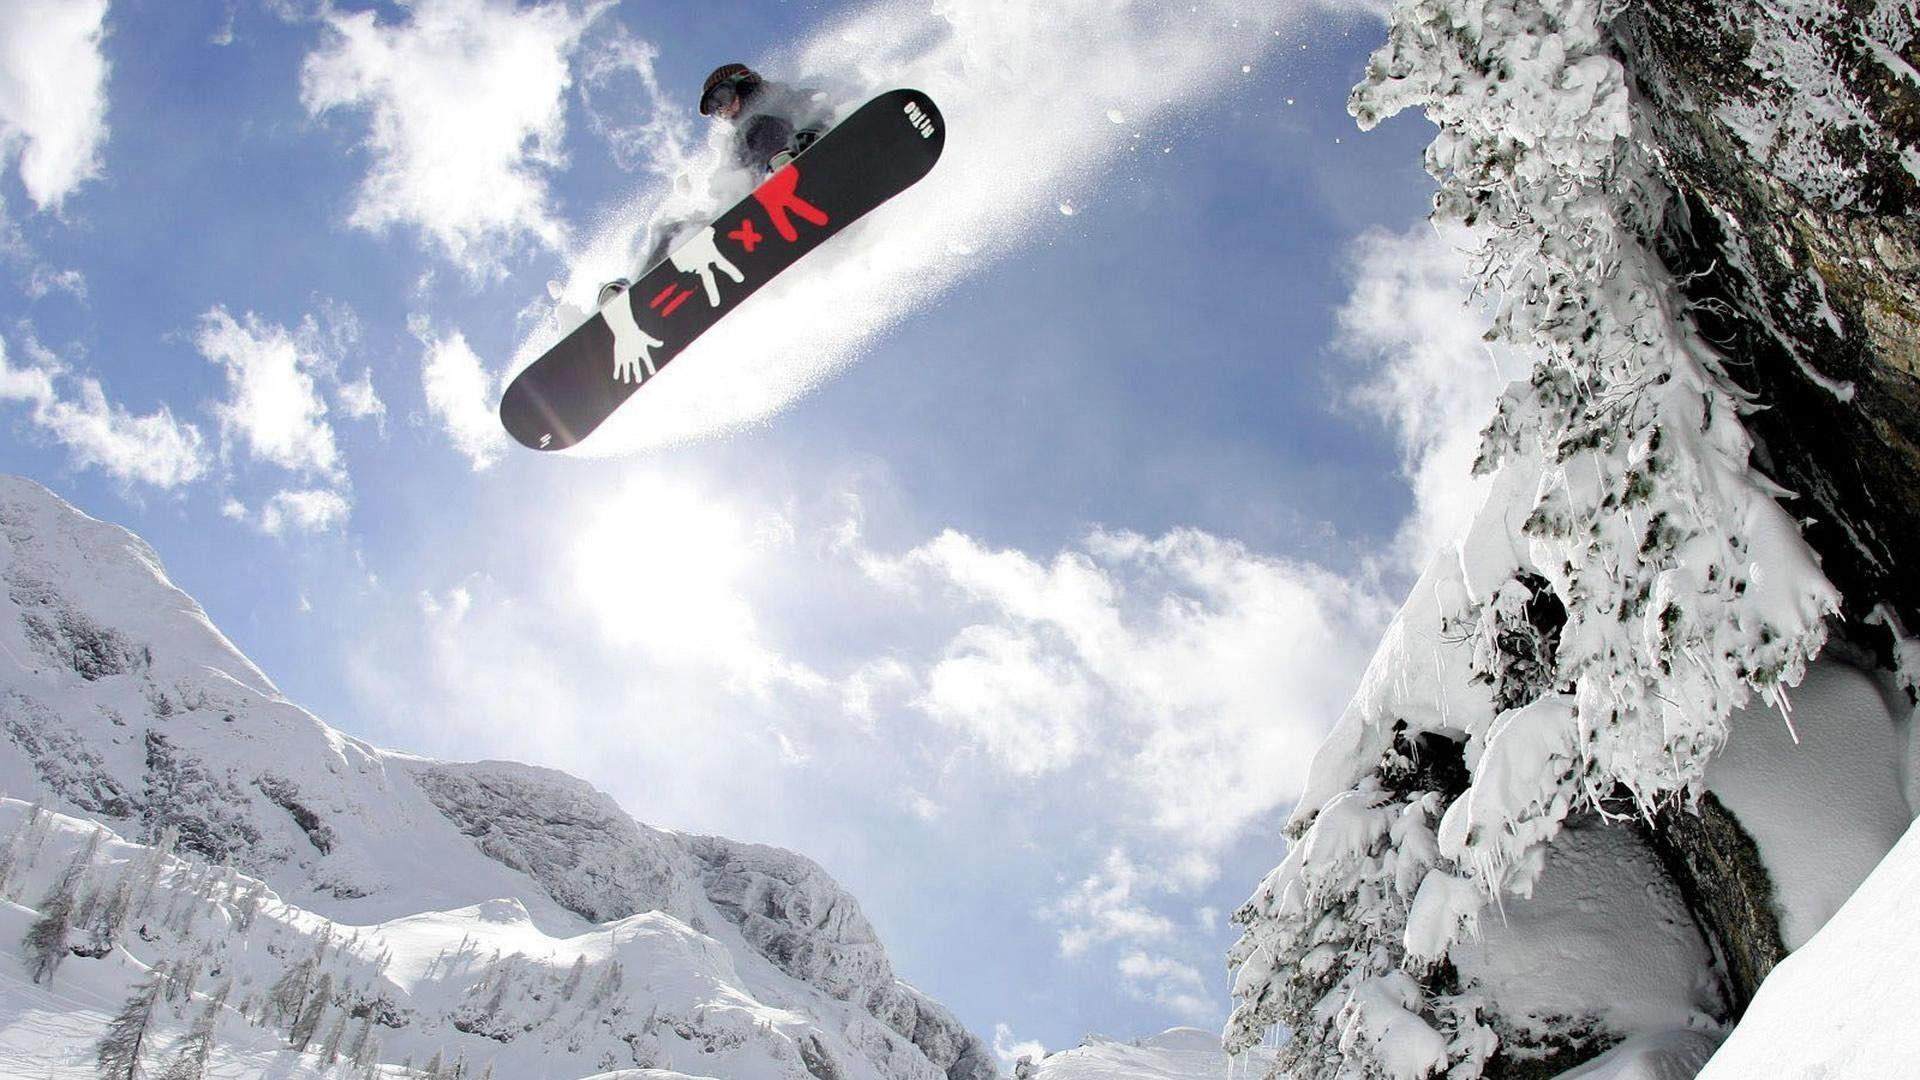 snowboarding wallpapers wallpaper - photo #10